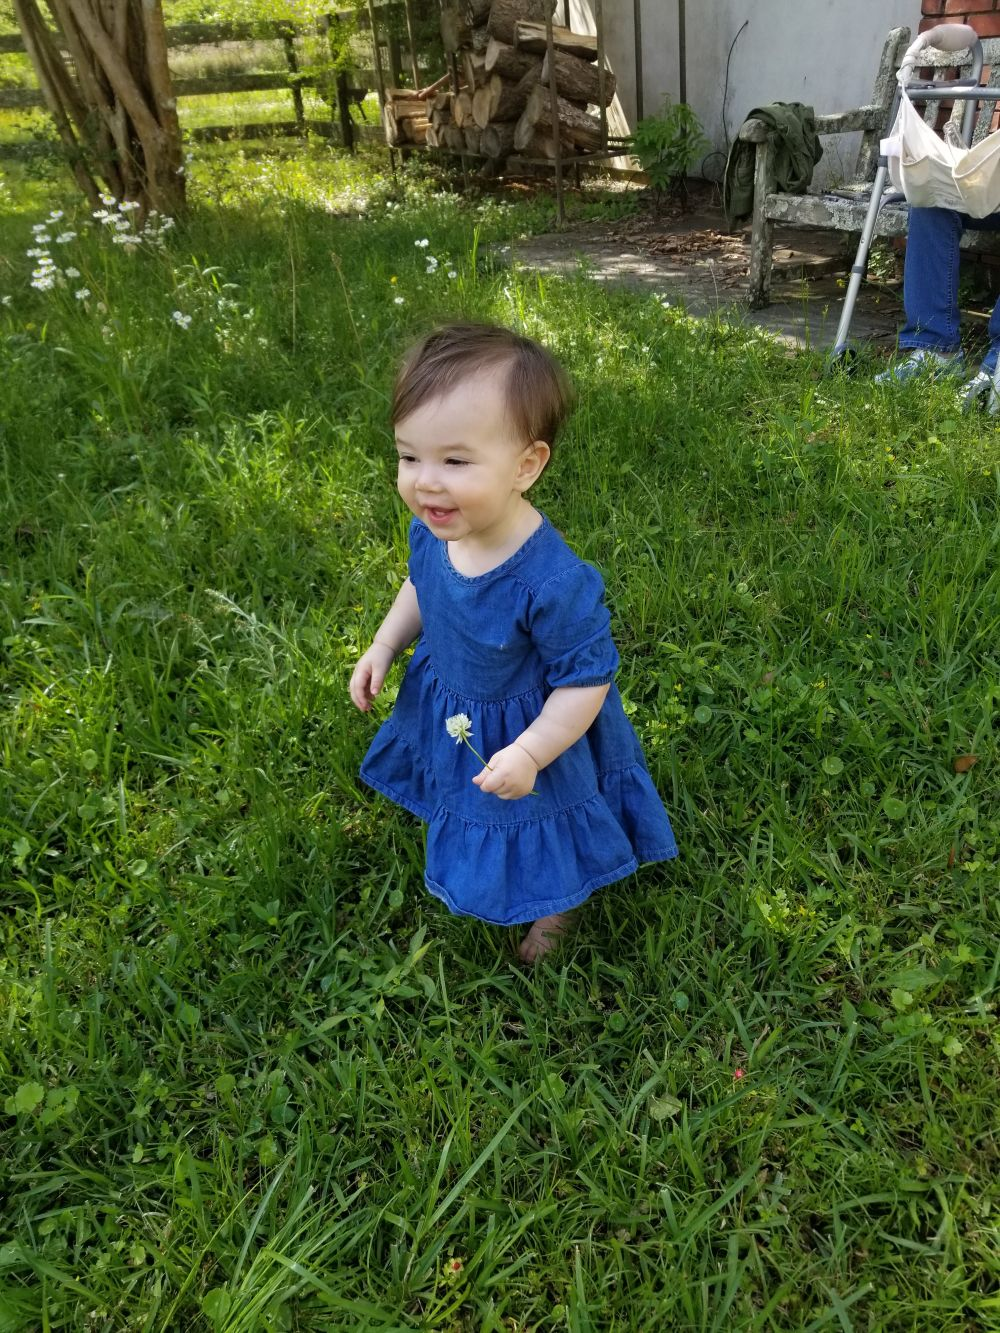 Happy baby on a lawn